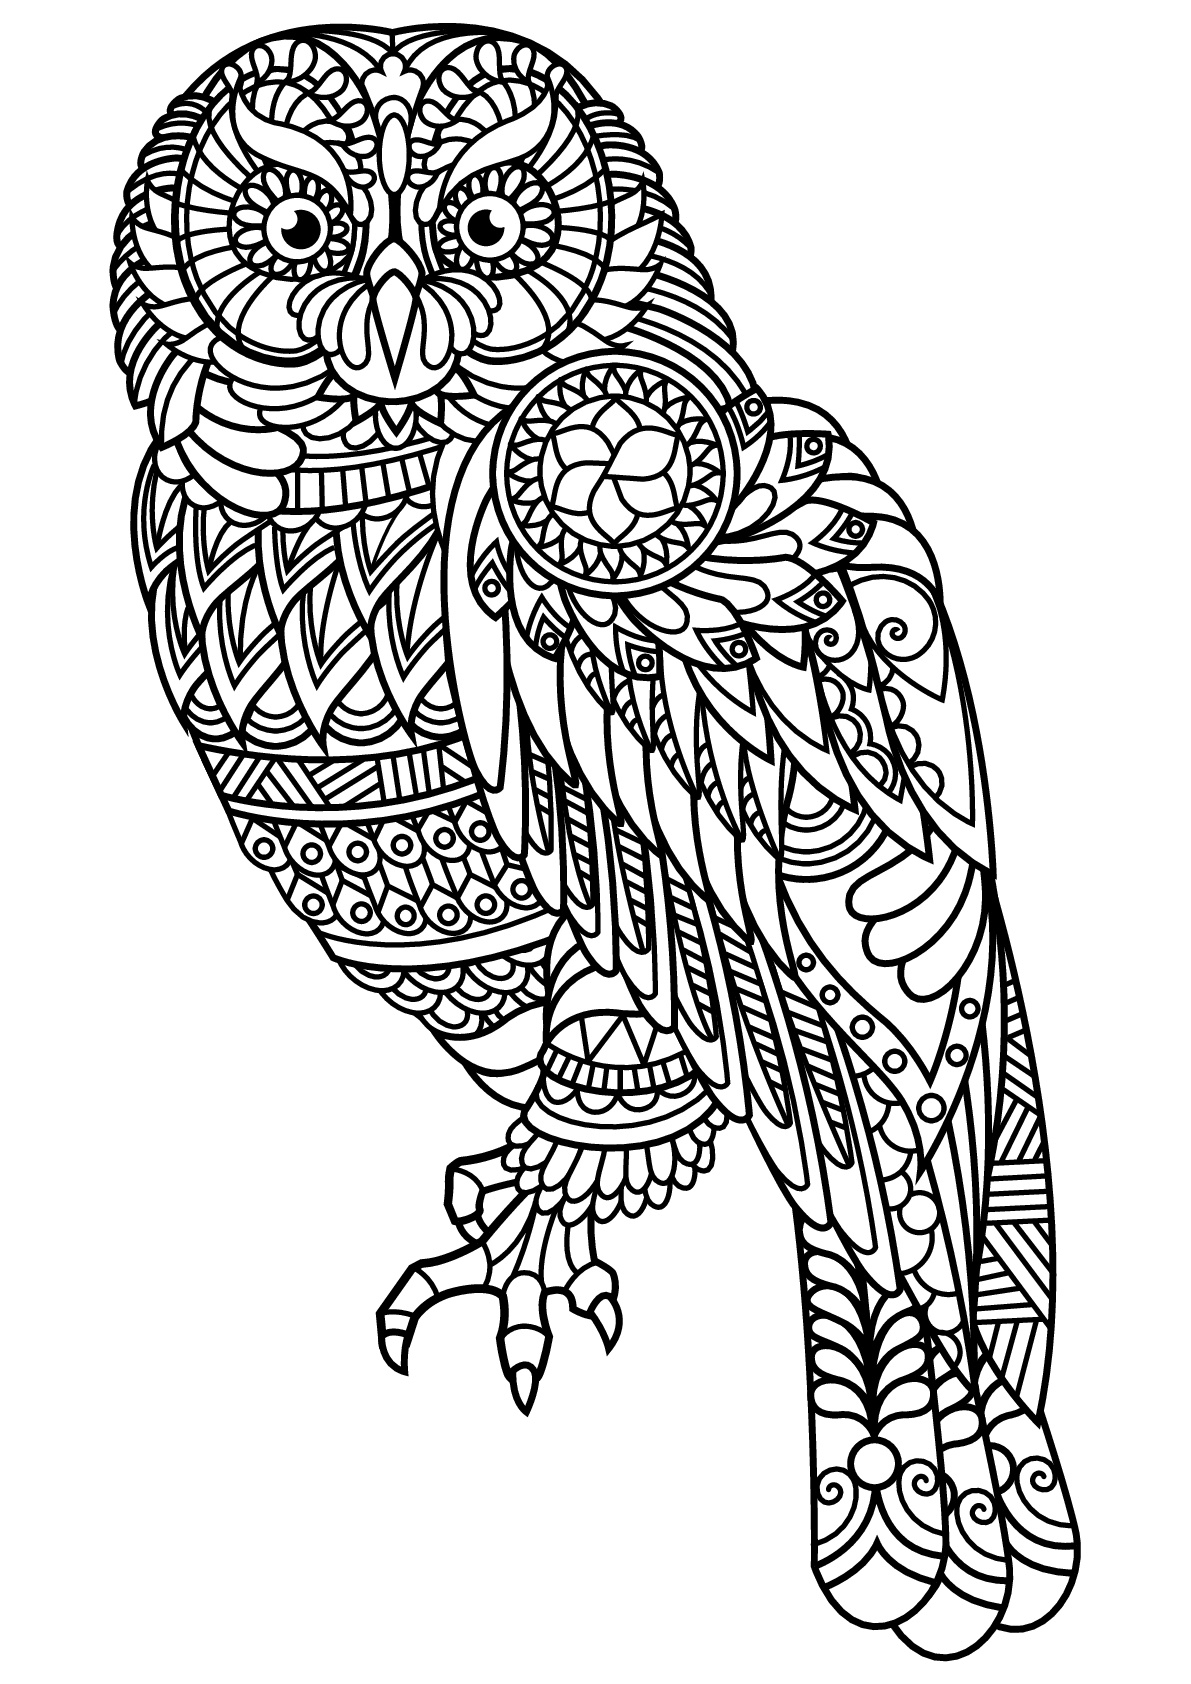 adult coloring pages animals llama easy adult coloring animals woo jr kids activities adult coloring pages animals